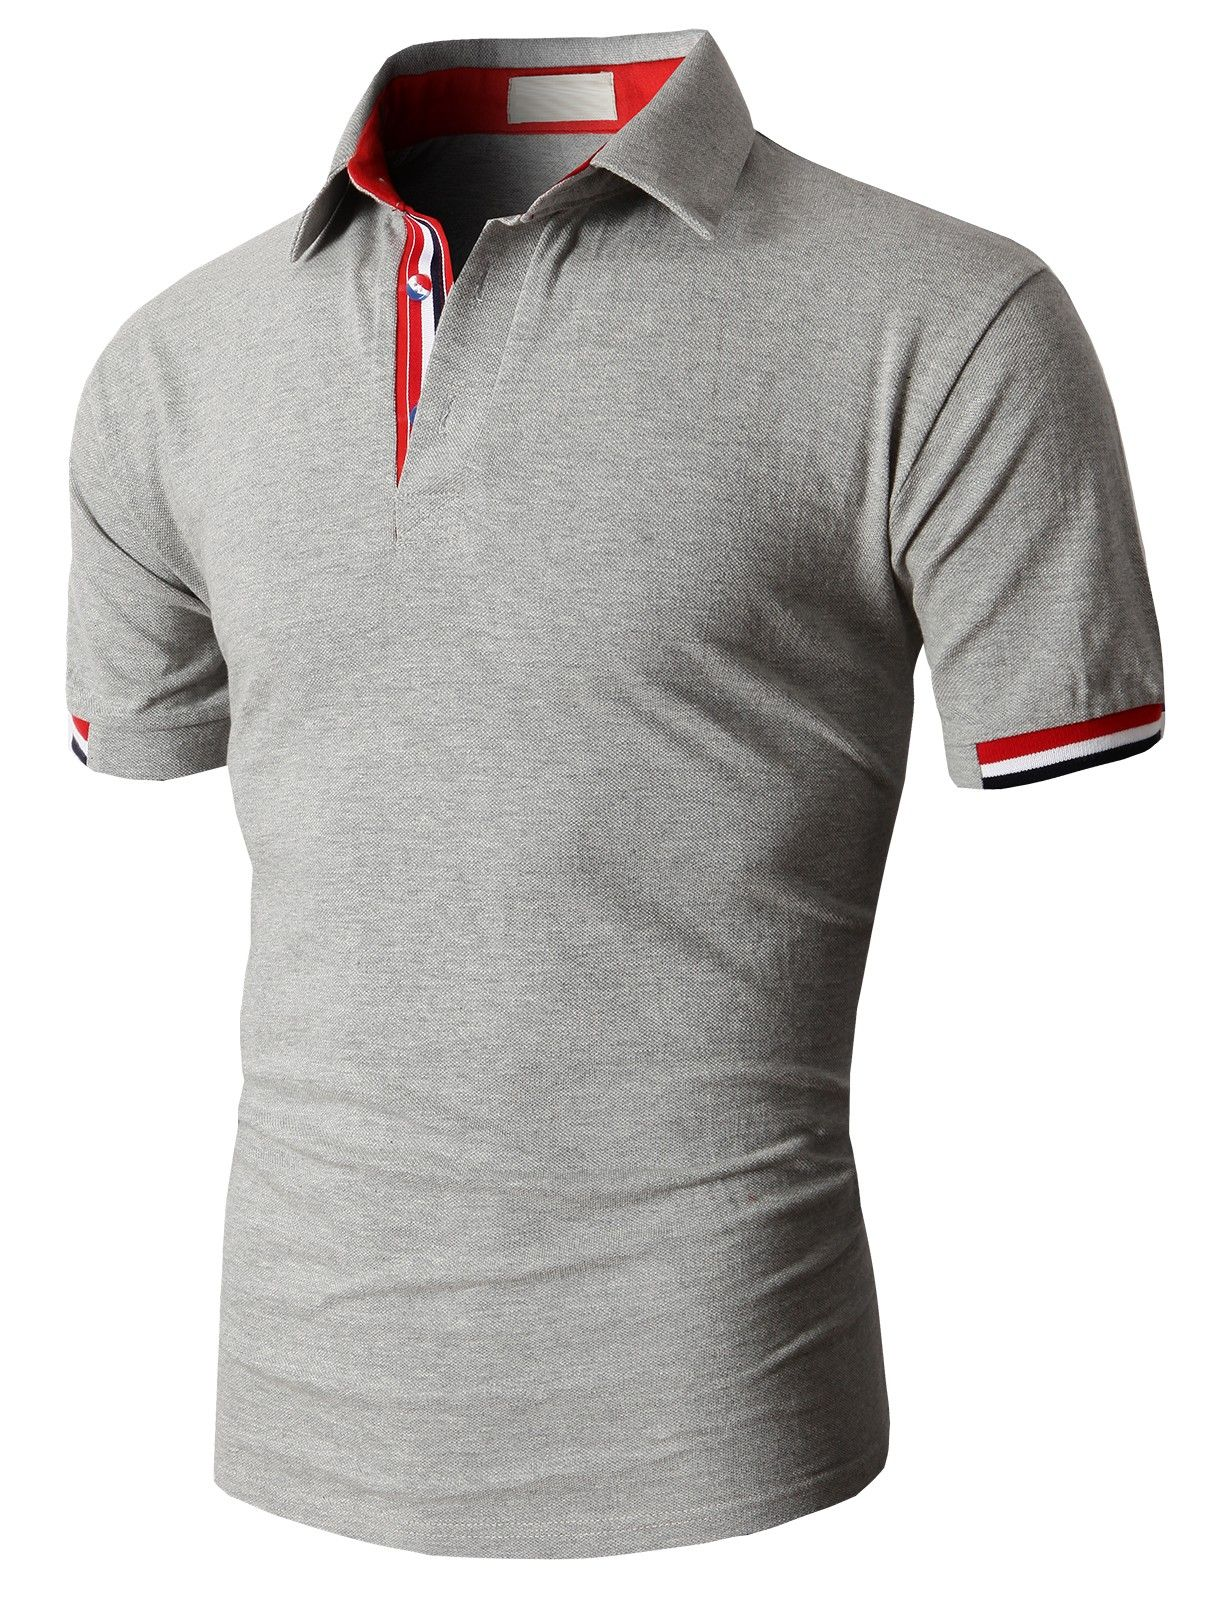 Doublju Fashion Pique Cotton Polo Shirts With Short Sleeve